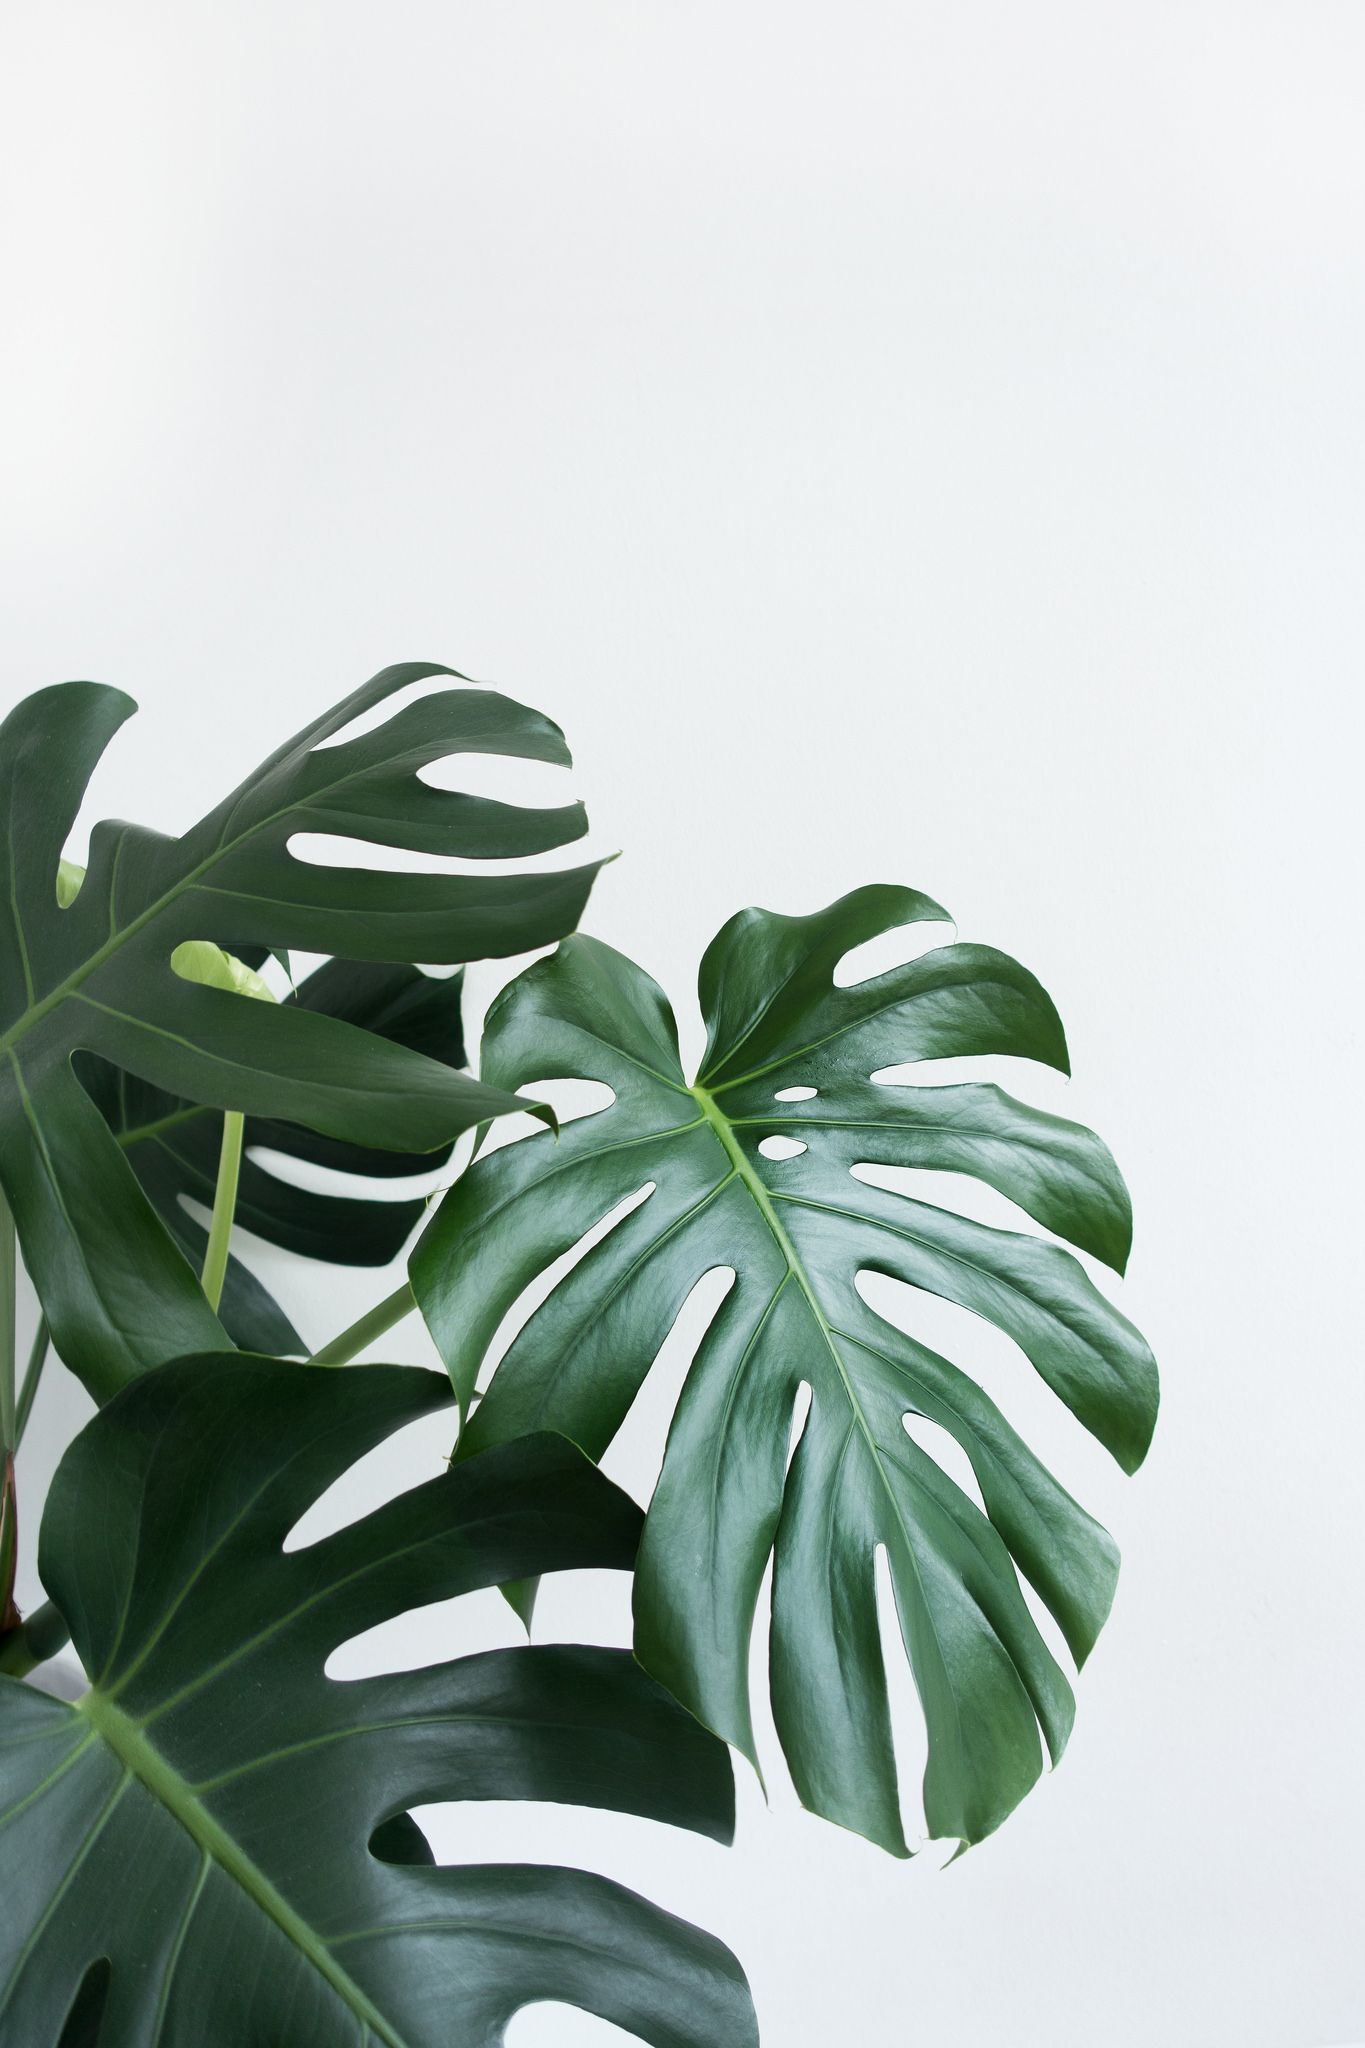 Monstera Deliciosa Leaf Check Out My Other Boards For More Wallpapers Plant Wallpaper Plant Aesthetic Plants